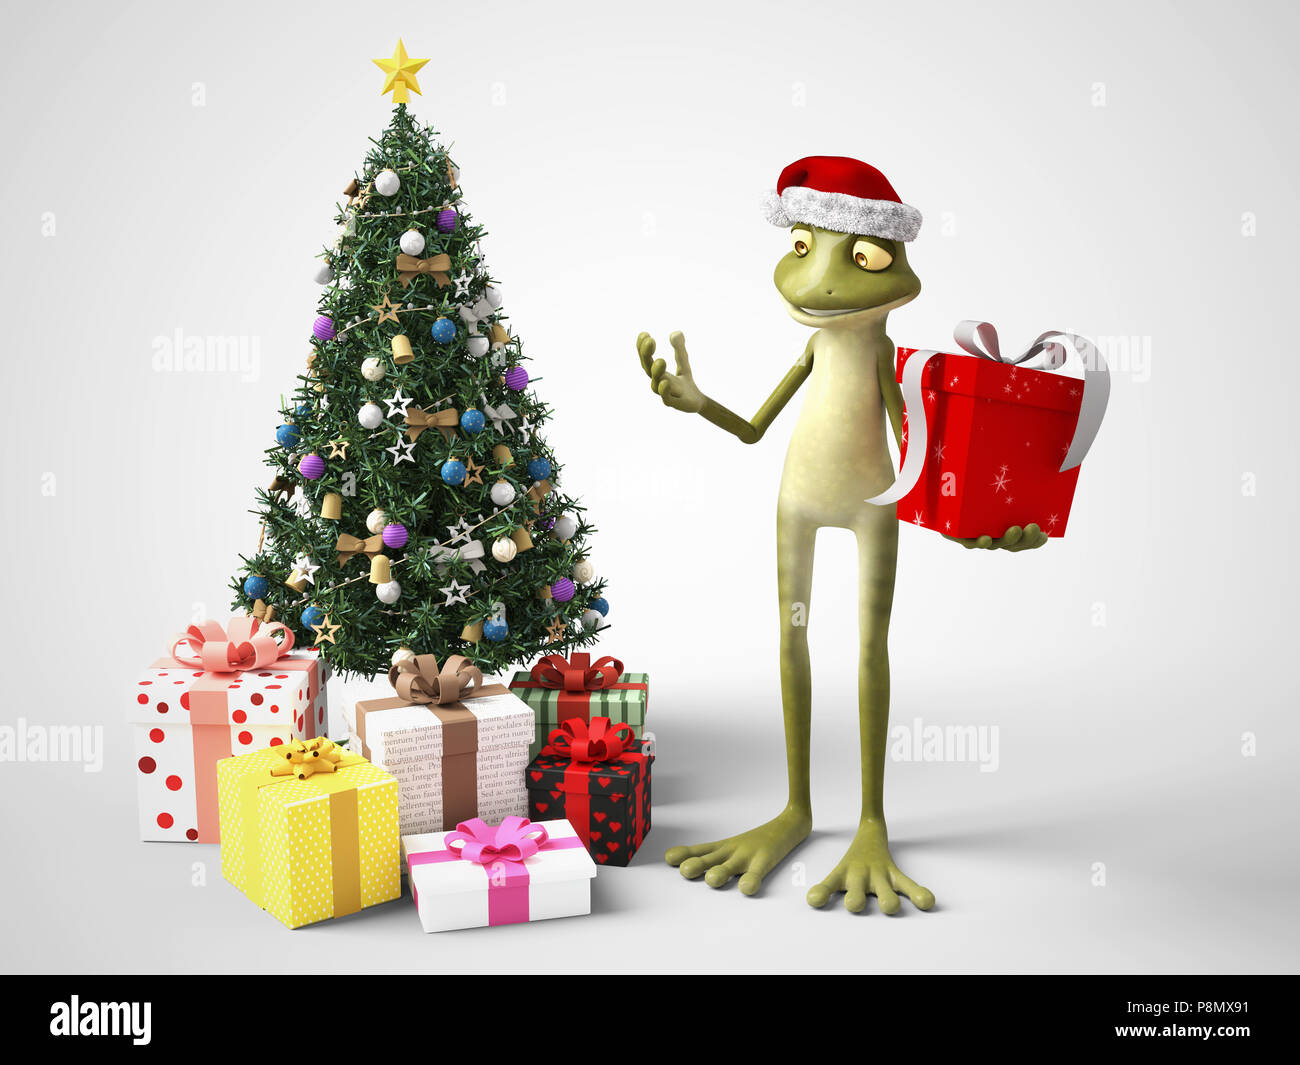 3D rendering of a smiling, cartoon frog wearing a Santa hat and ...